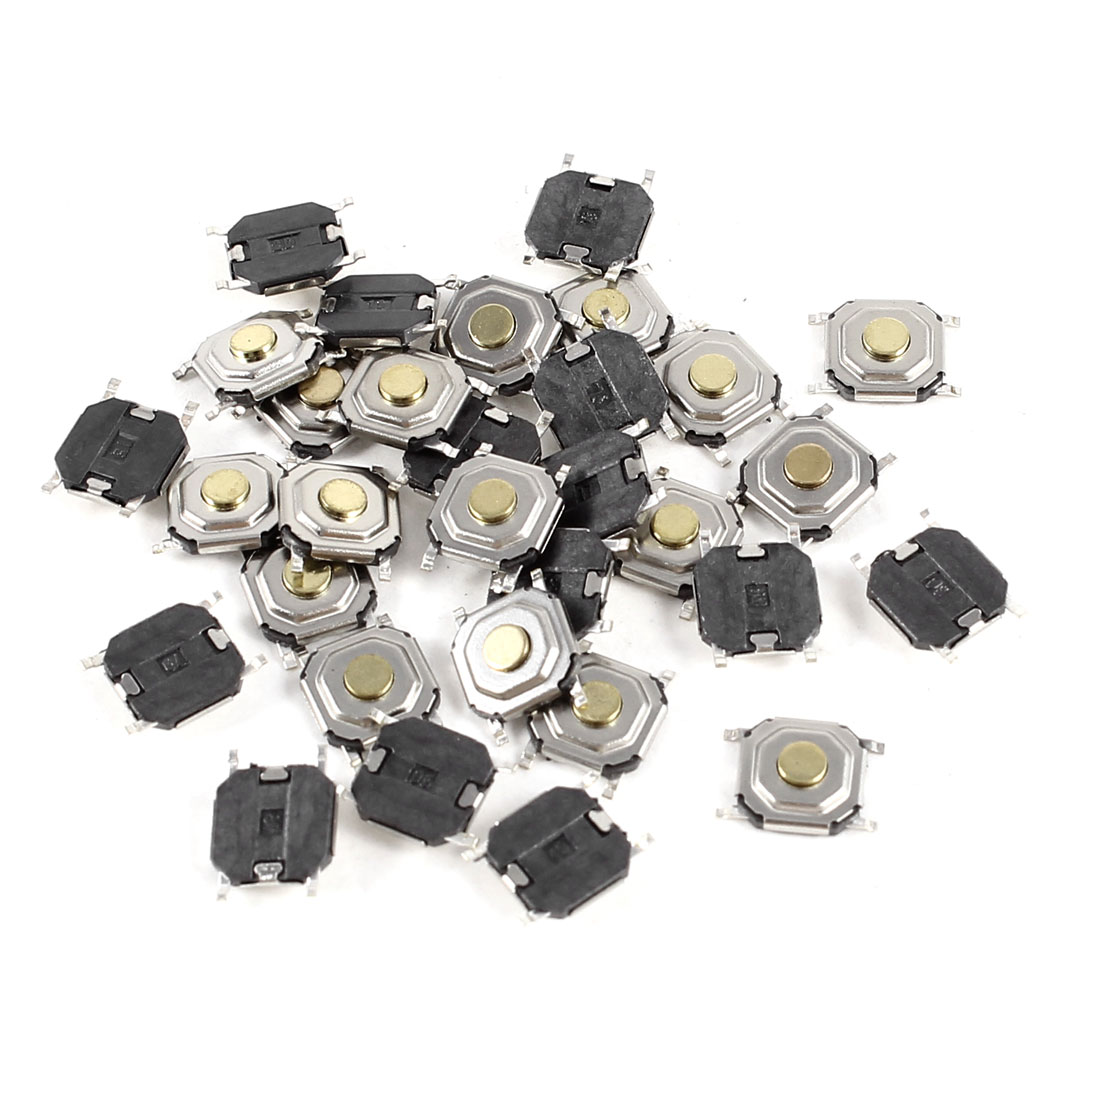 30 Pcs 5x5x1.5mm SMD Momentary 4 Pin Tact Tactile Micro Switch DC 12V 0.2A